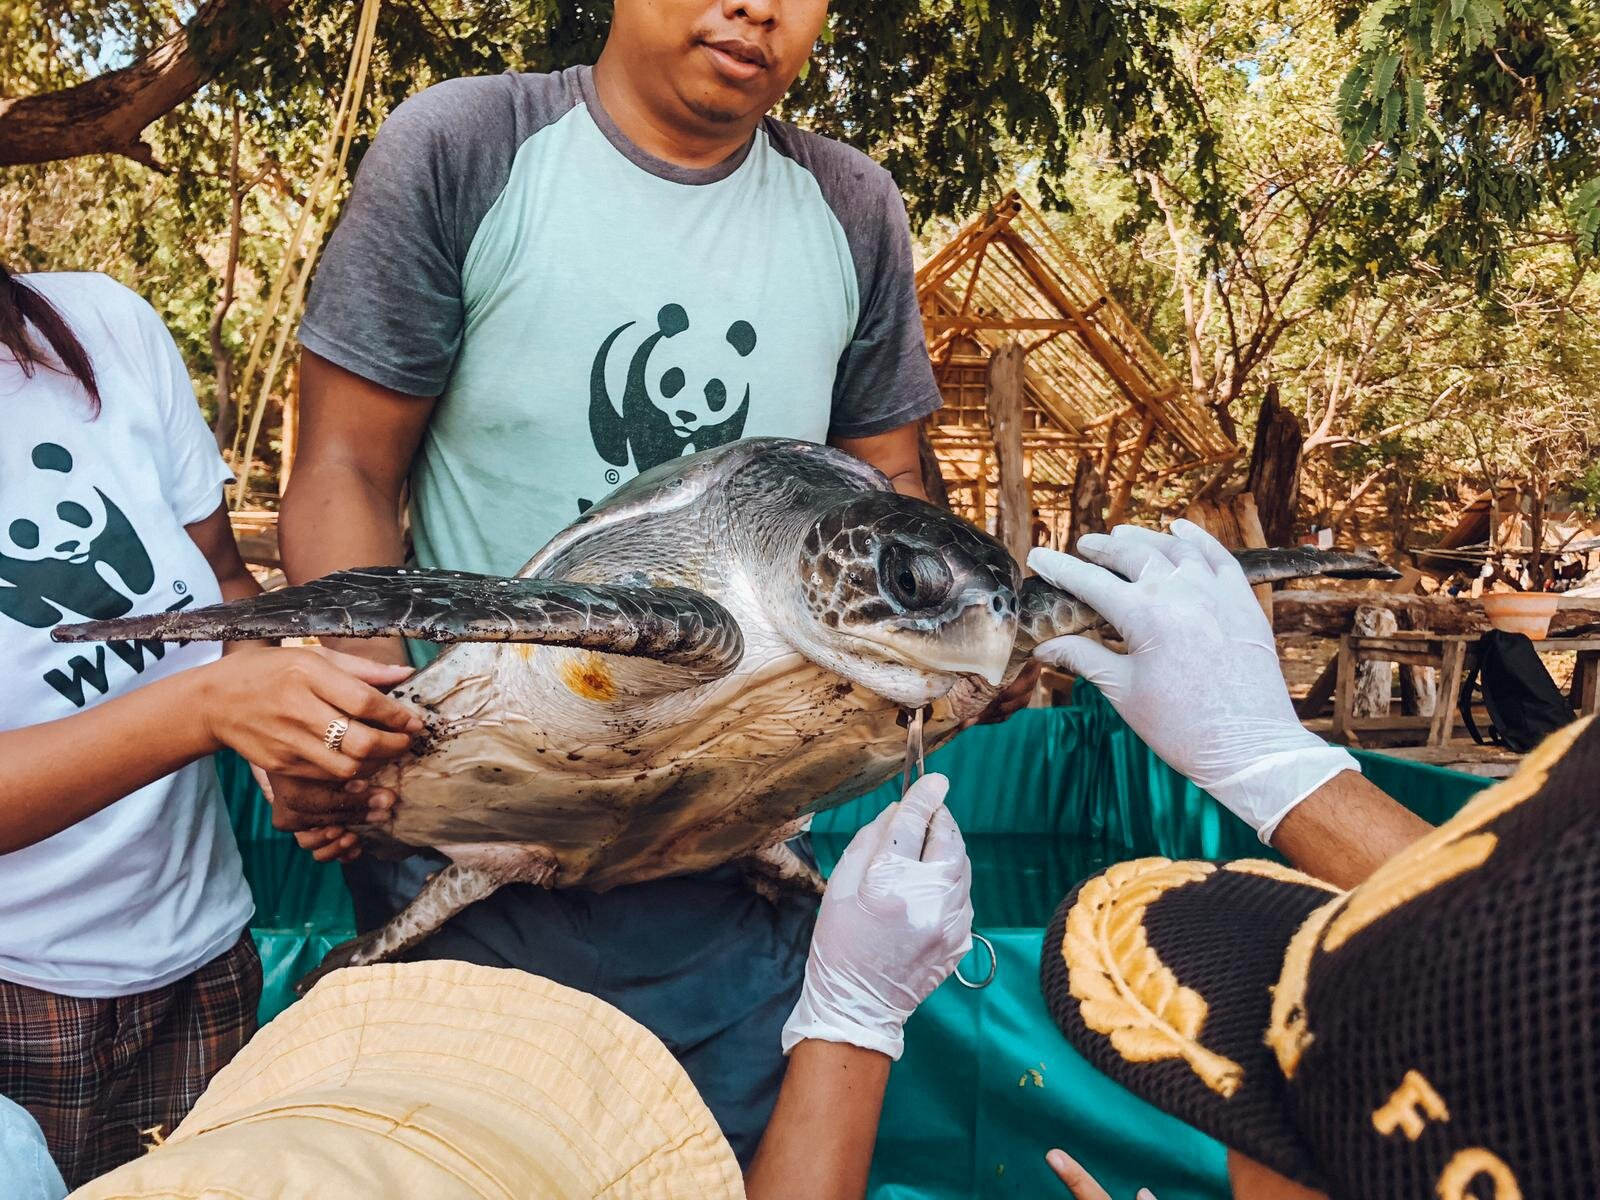 THE TURTLE WAS INSPECTED AND DETAILS LOGGED BY WWF OFFICIALS BEFORE BEING RELEASED BACK INTO THE WILD.